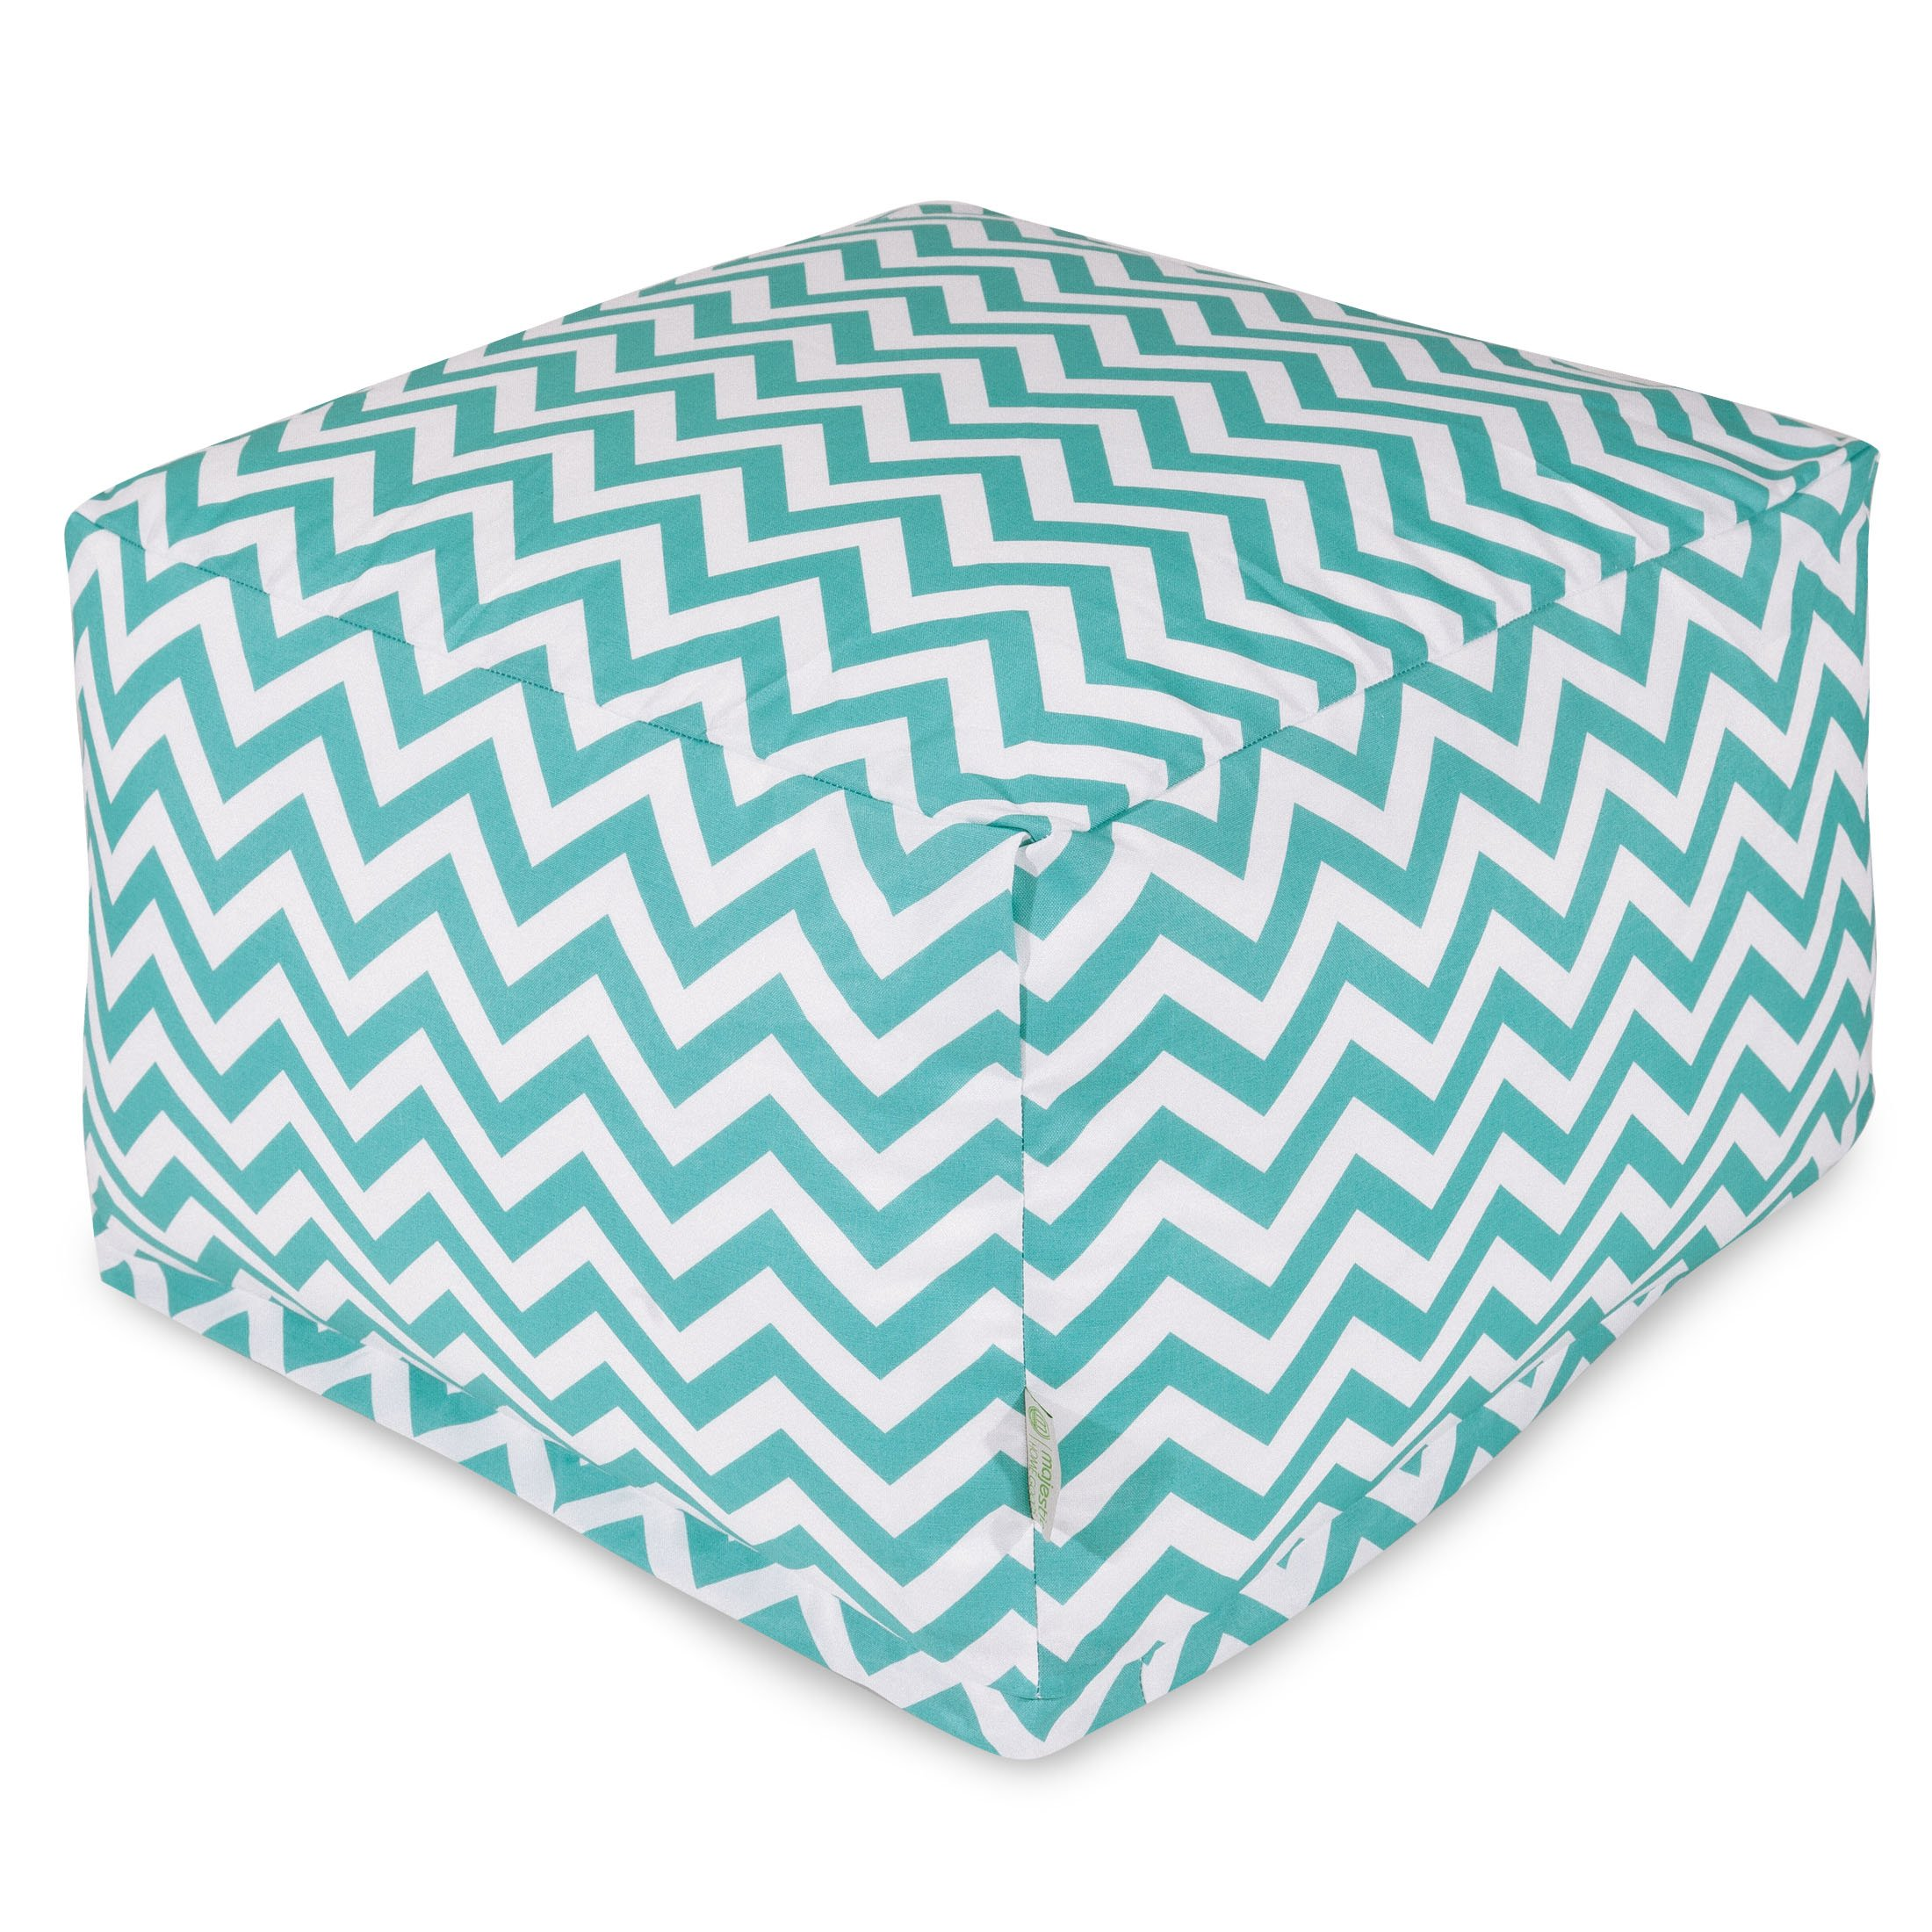 Majestic Home Goods Chevron Ottoman, Large, Teal by Majestic Home Goods (Image #1)